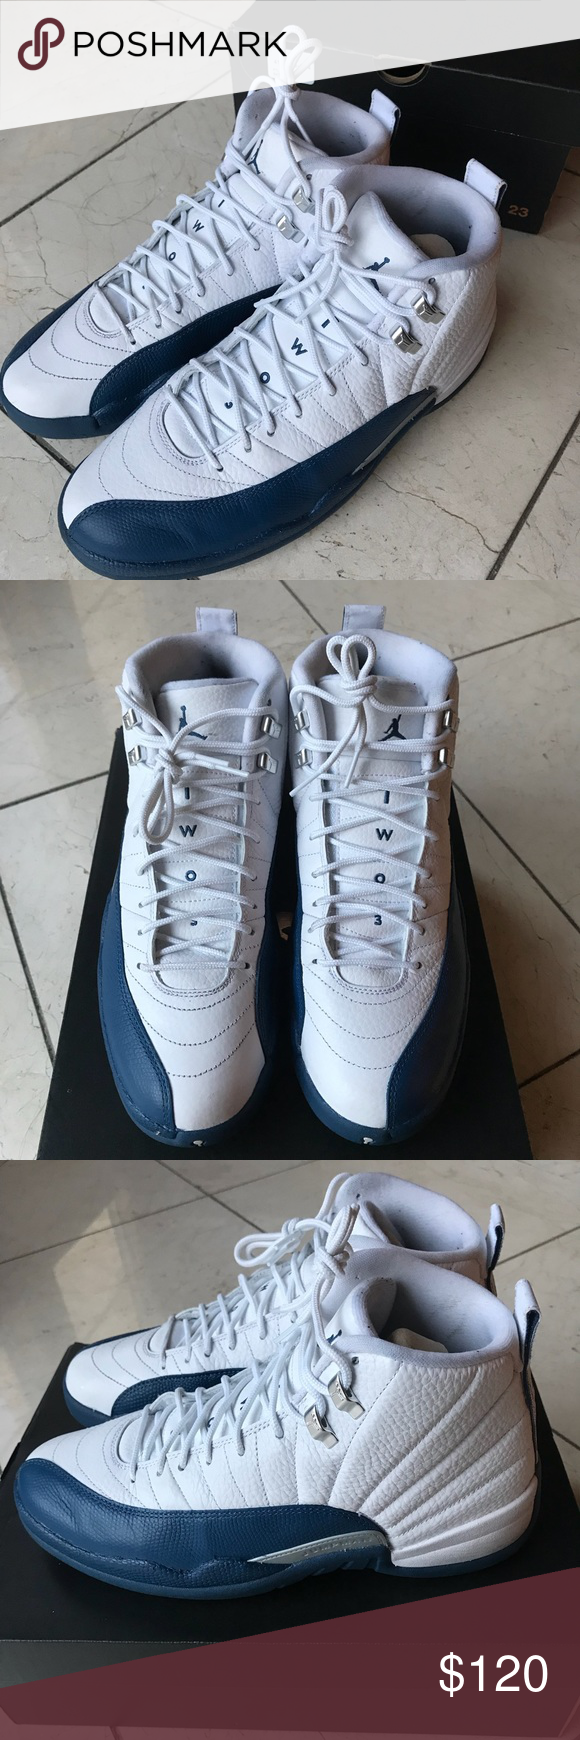 """36423696cfde Air Jordan 12 Retro """"French Blue"""" Only worn once! Air Jordan 12 Retro """"French  Blue"""" 2016. These Air Jordan s are white"""